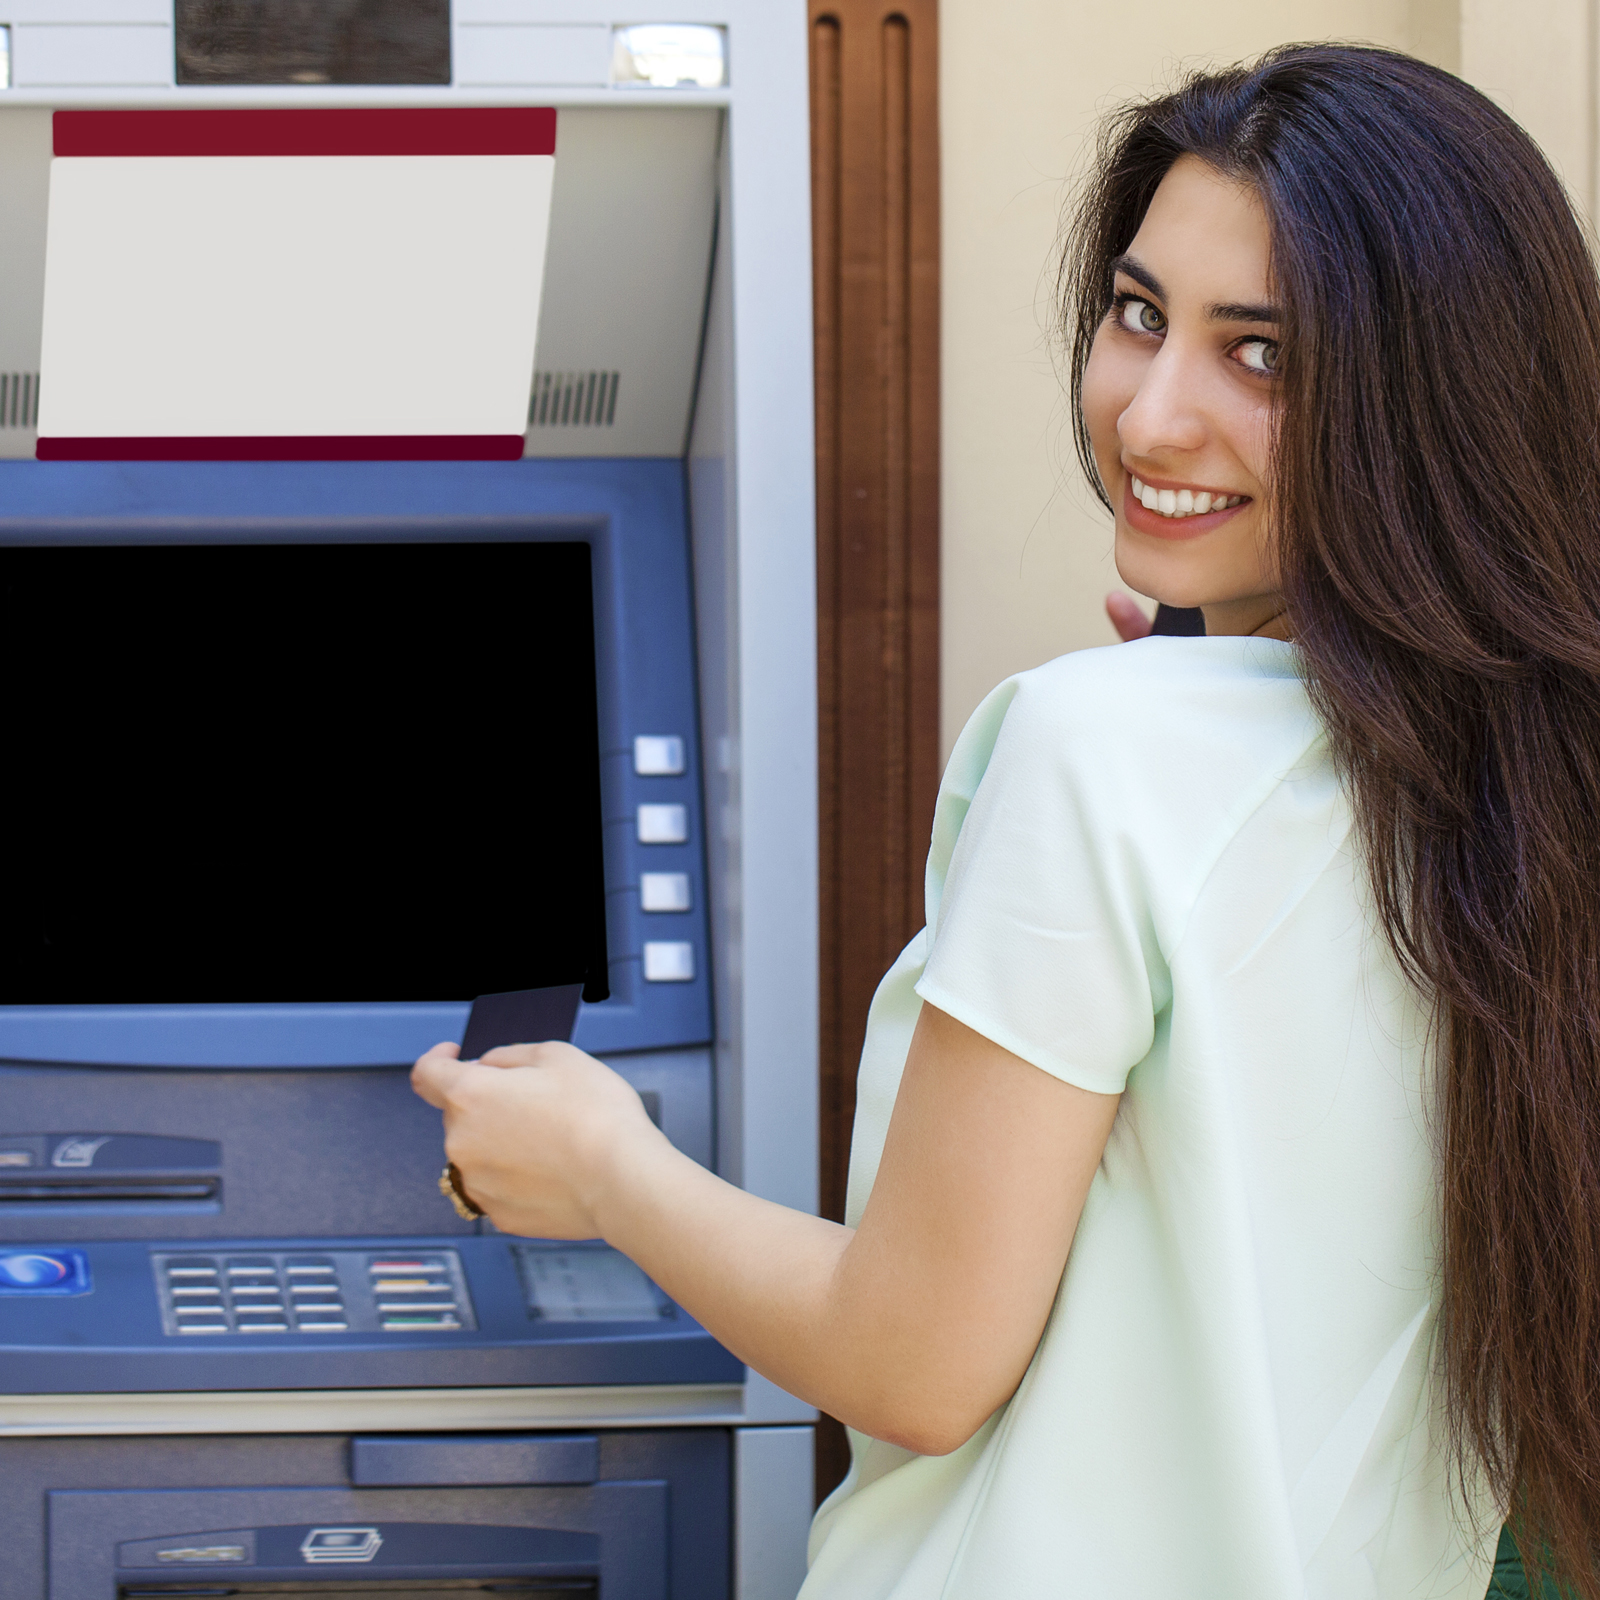 Bitcoin ATM Installed in Georgia Amid Growing Interest in Crypto